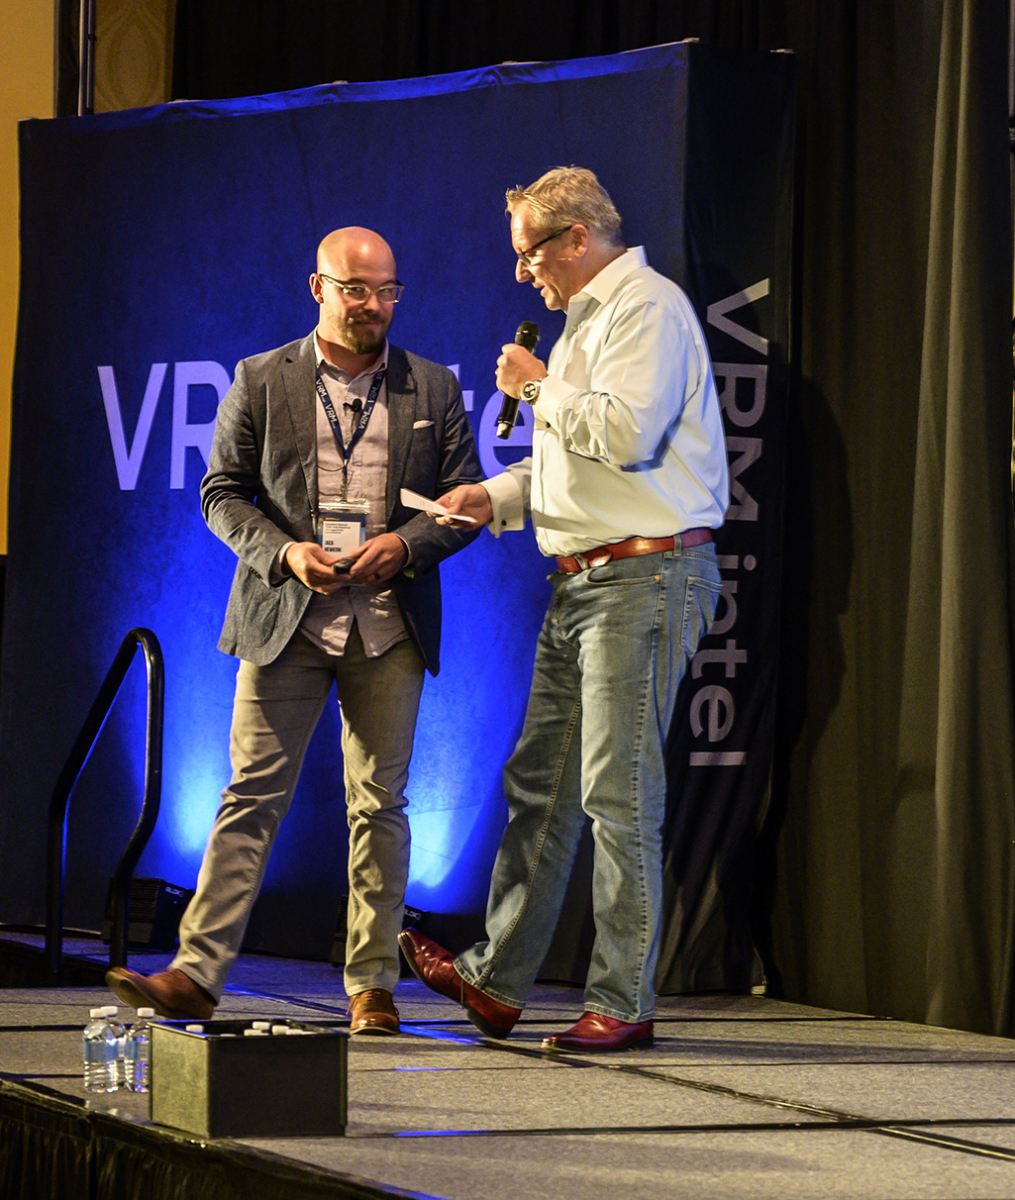 2019 Vacation Rental Data and Revenue Conference122